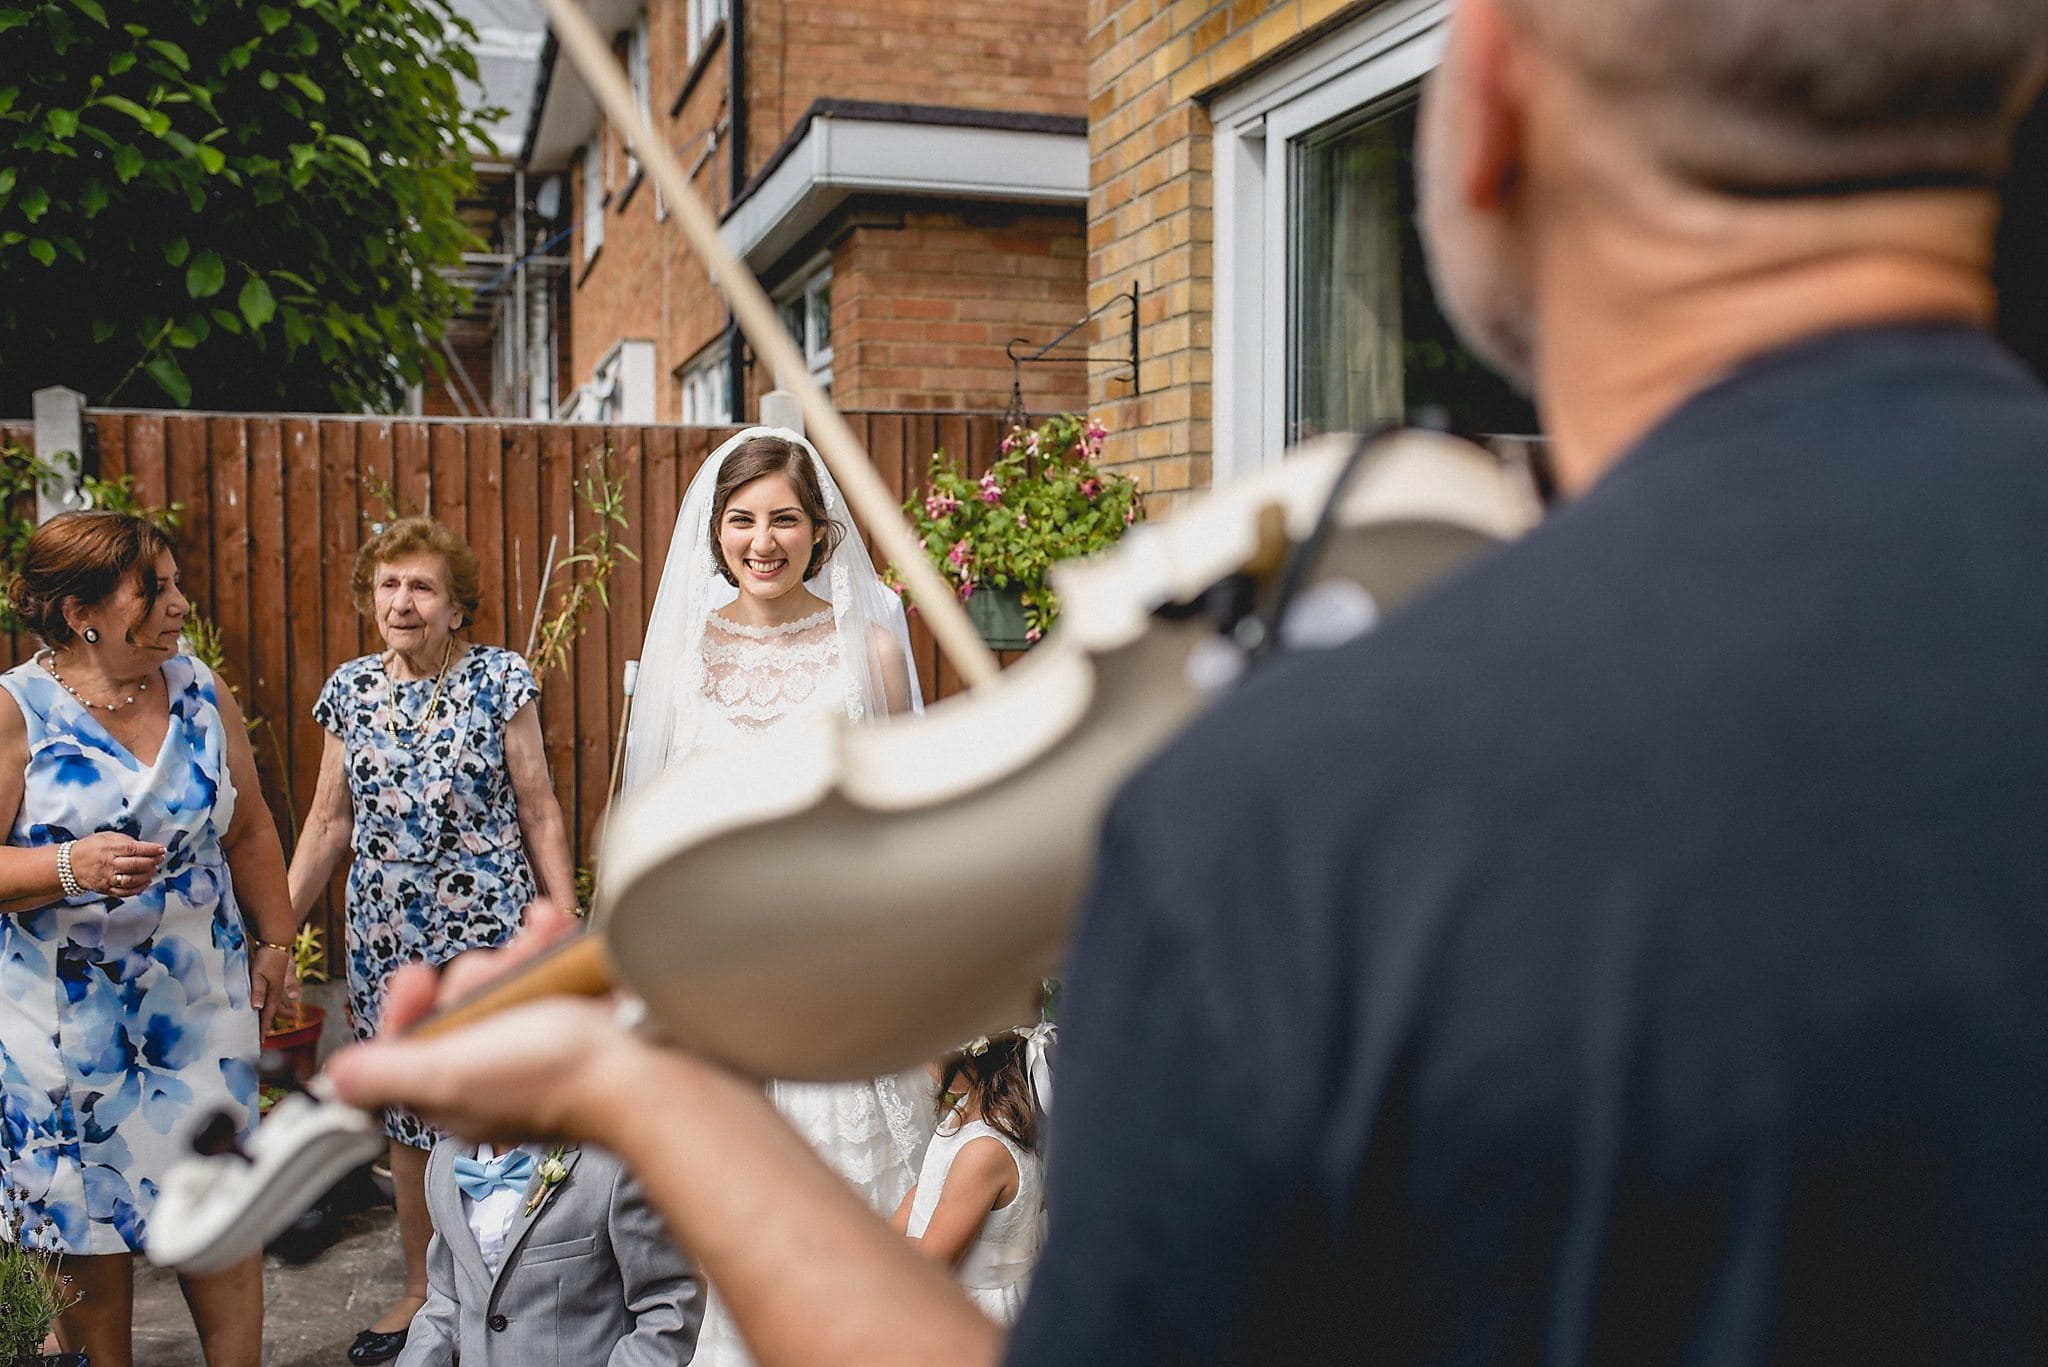 Fiddler plays white violin as bride prepares for her modern Greek wedding in her garden